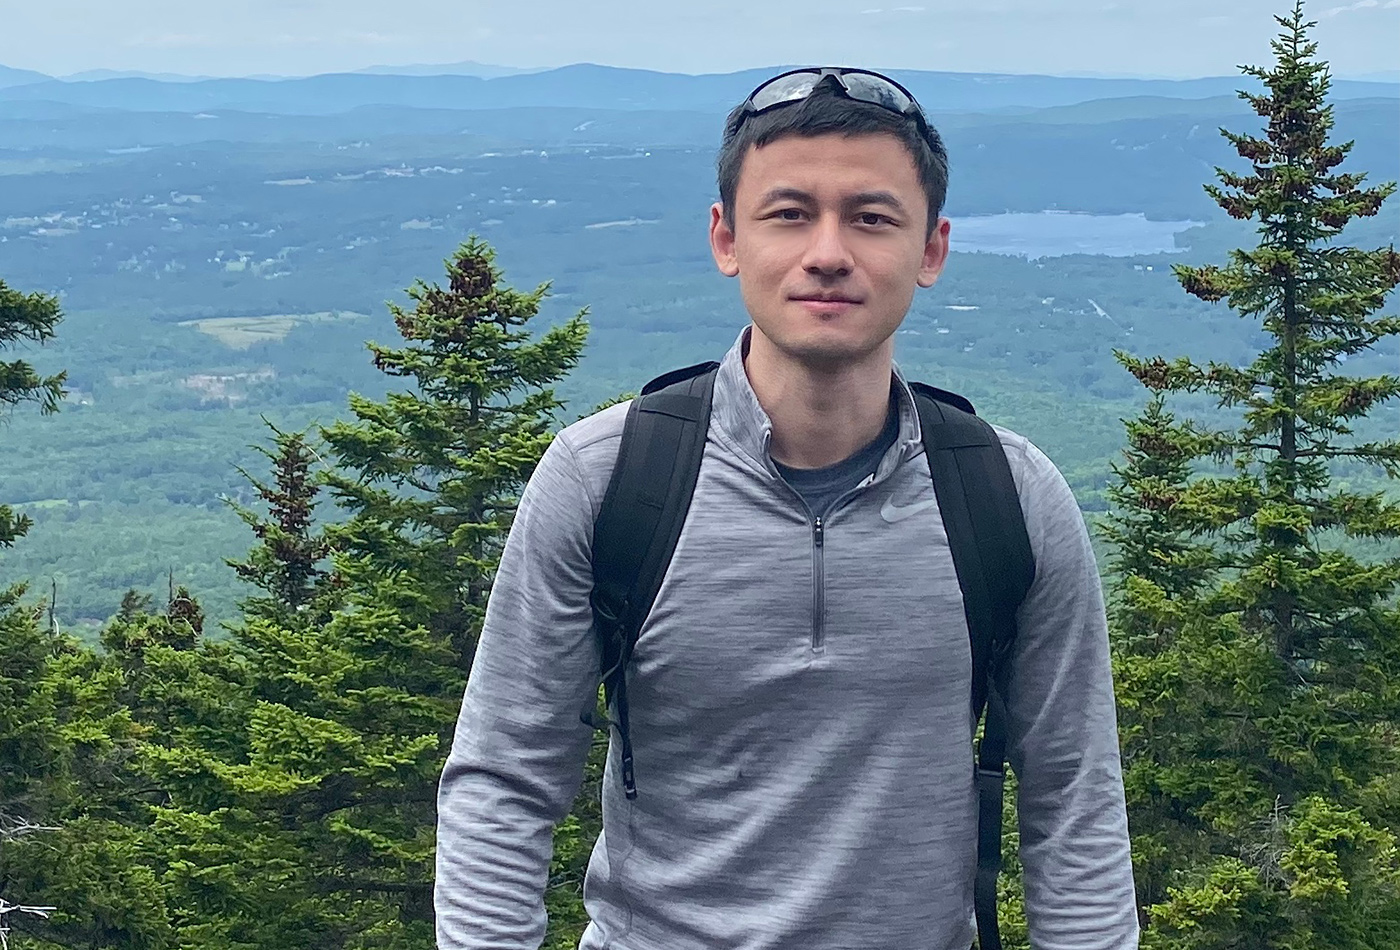 A male graduate student smiles on a mountaintop.